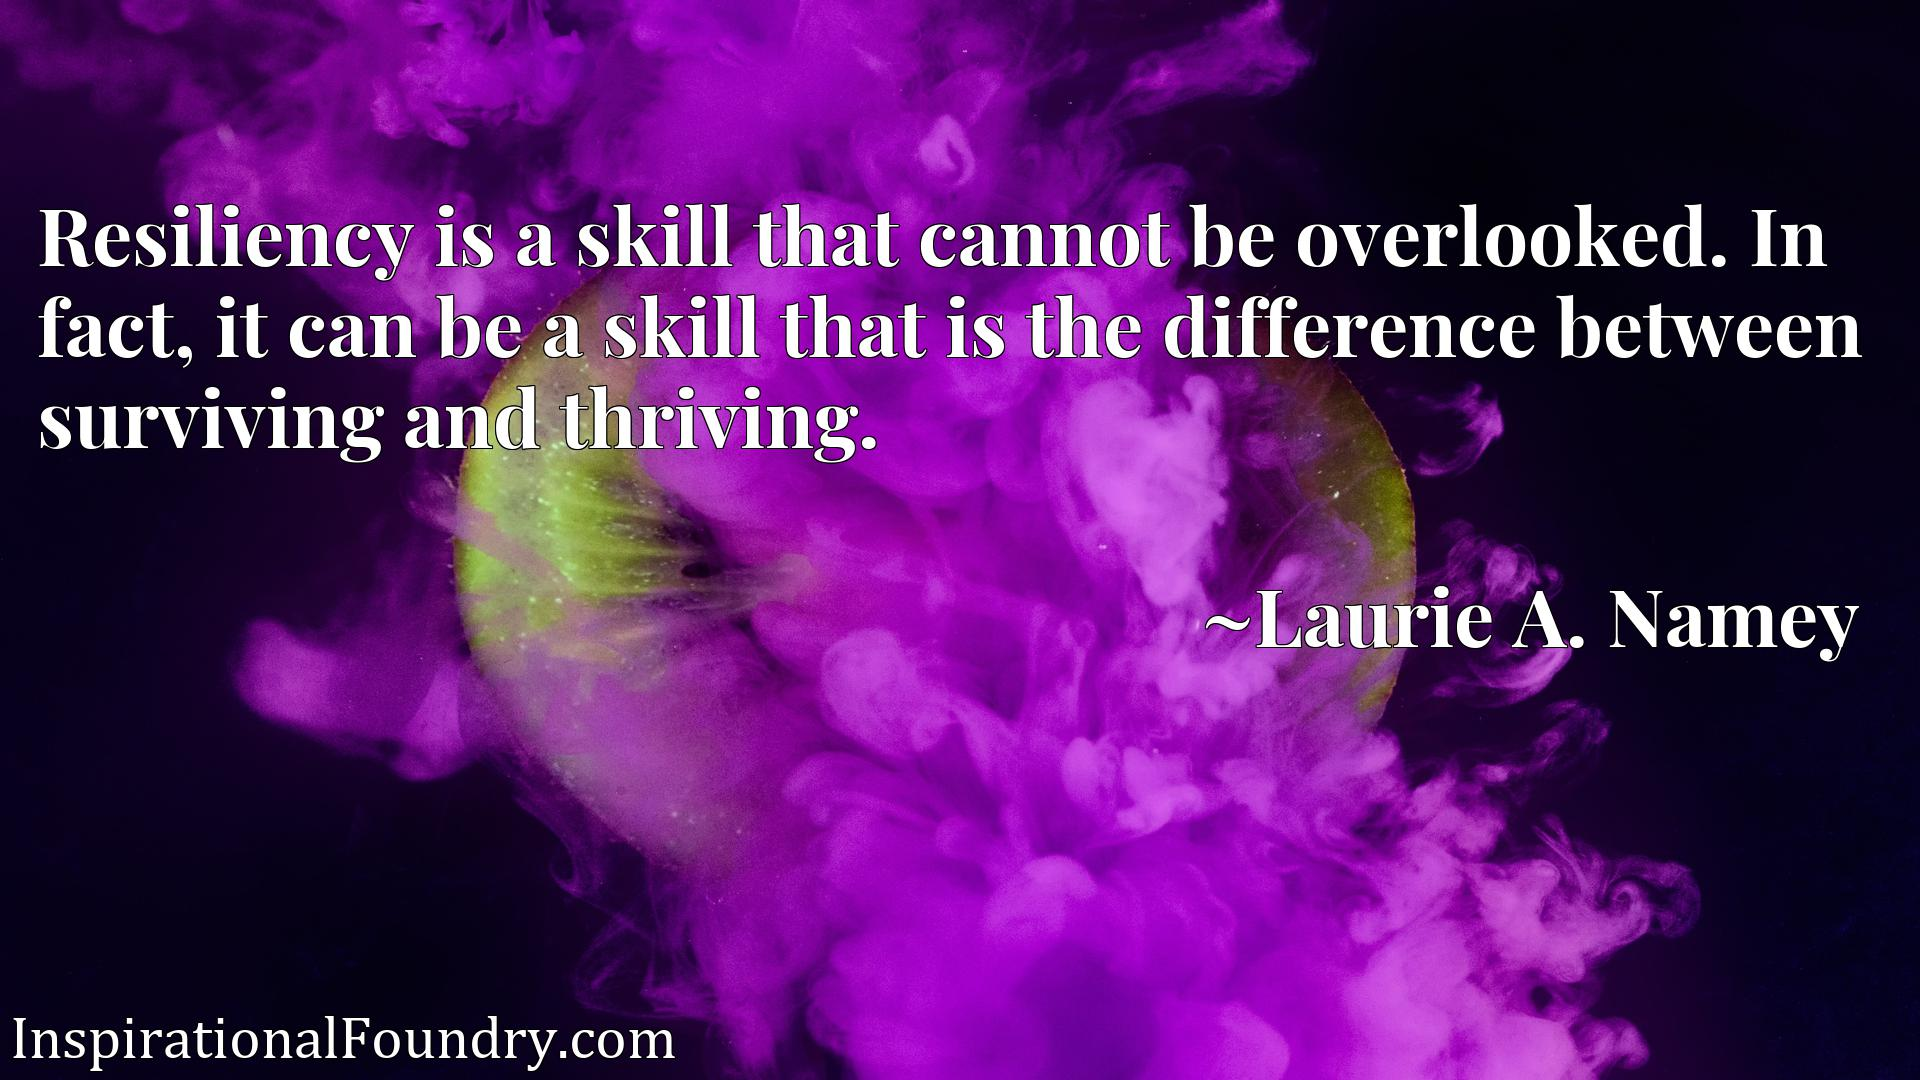 Resiliency is a skill that cannot be overlooked. In fact, it can be a skill that is the difference between surviving and thriving.